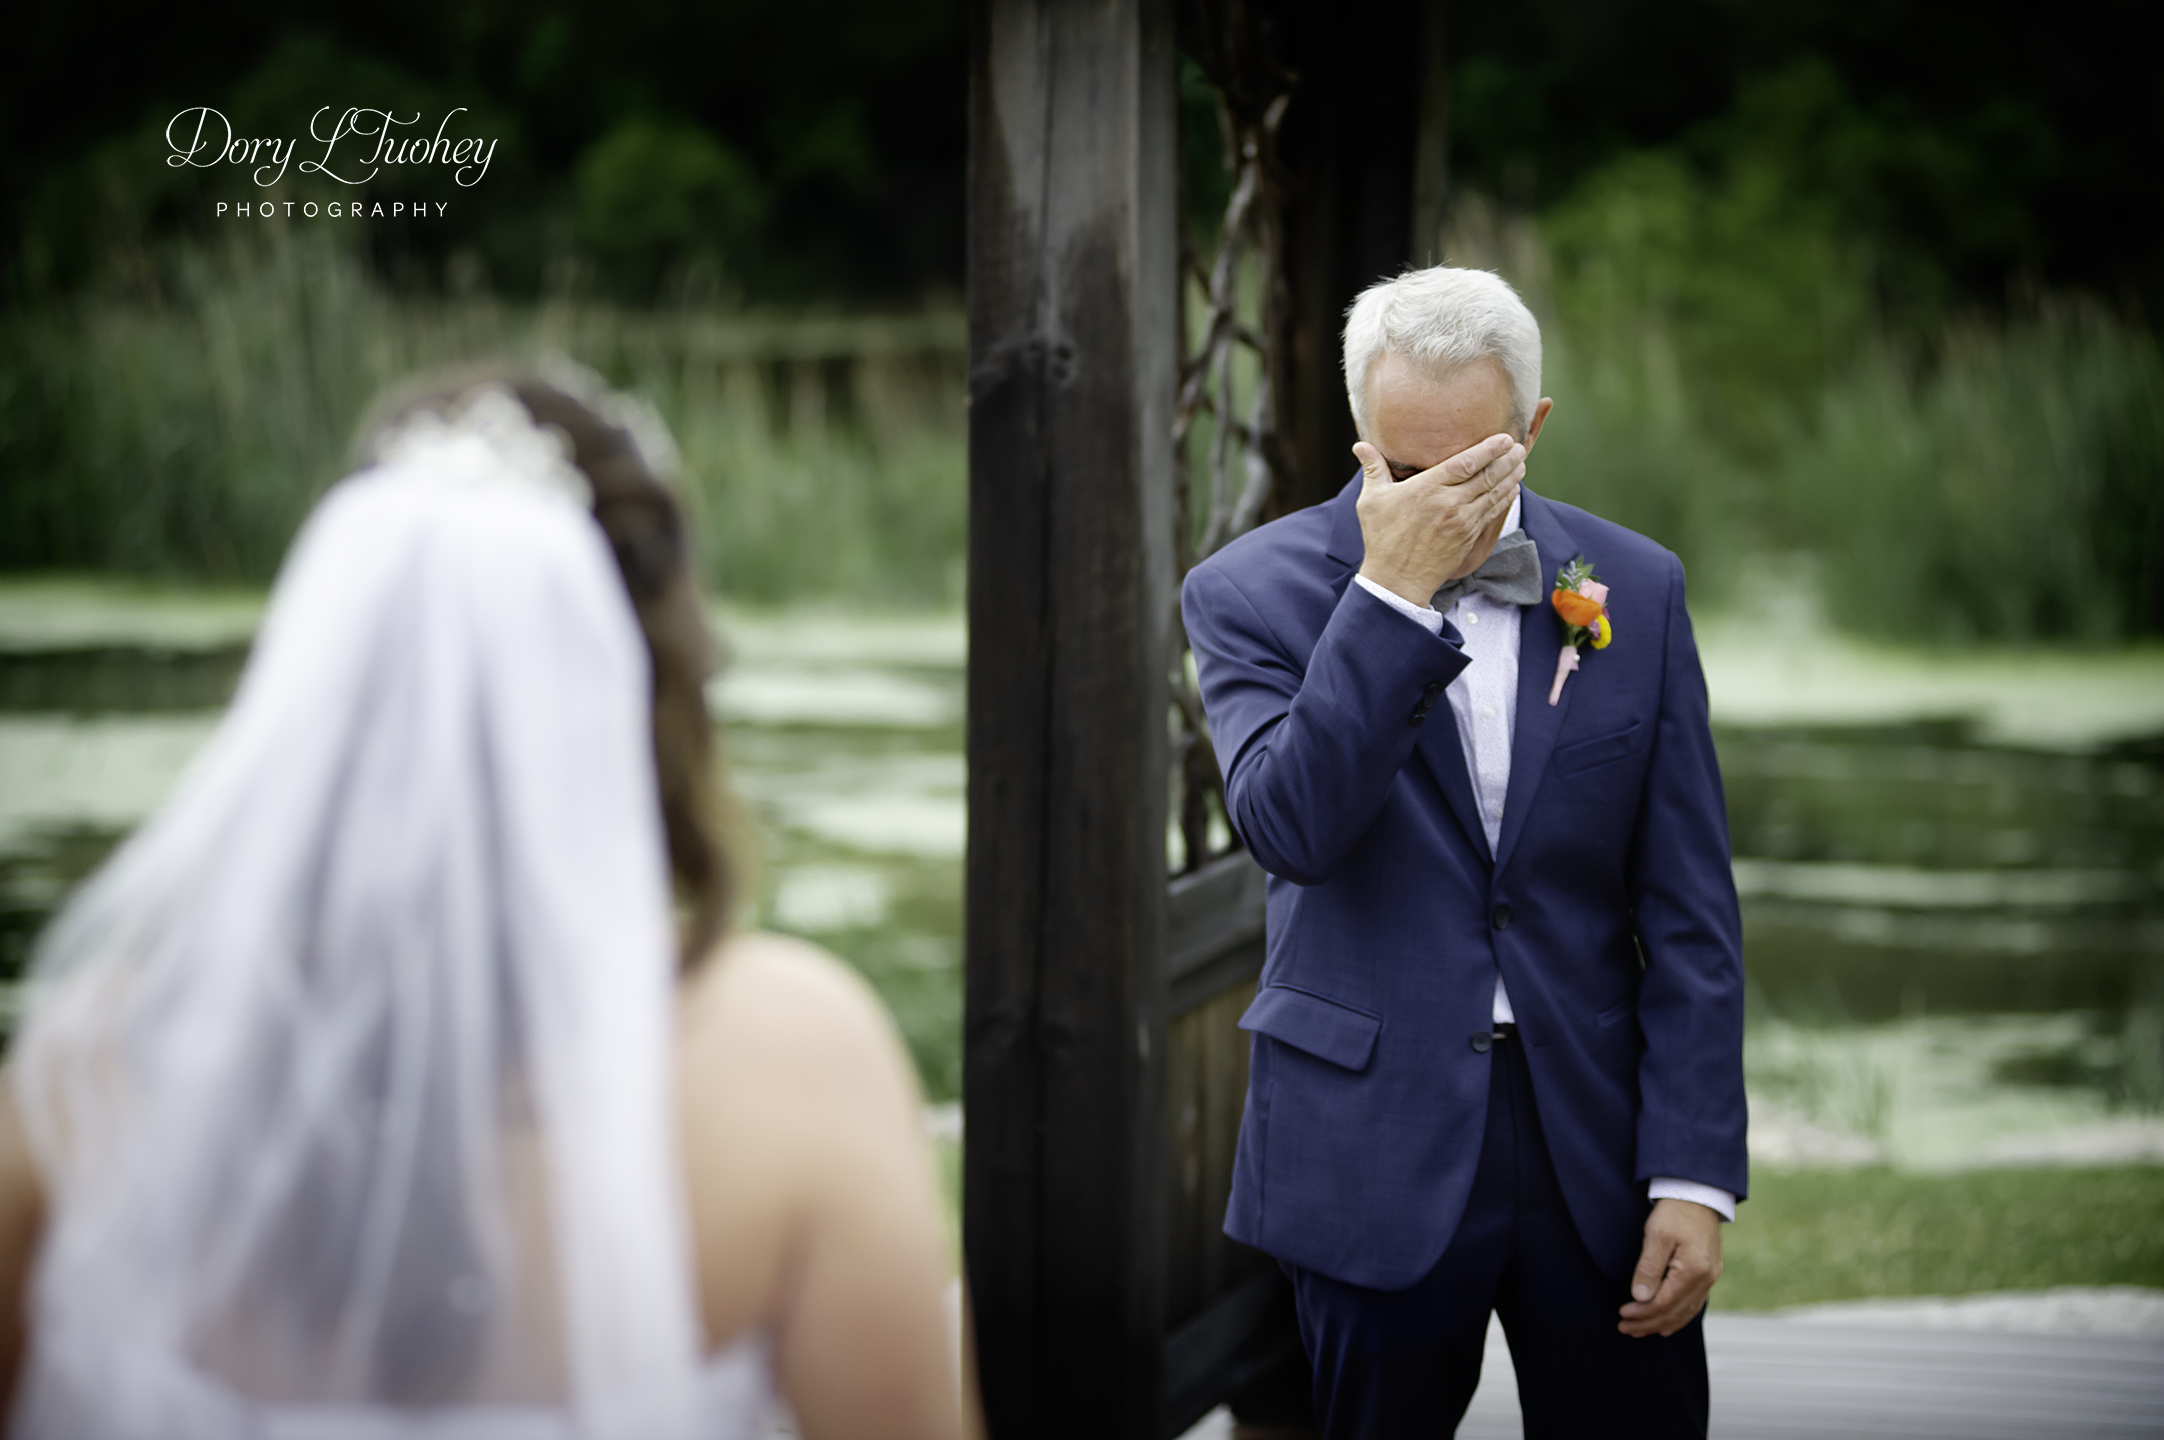 Love this moment when Leah's dad sees her for the first time as a bride.